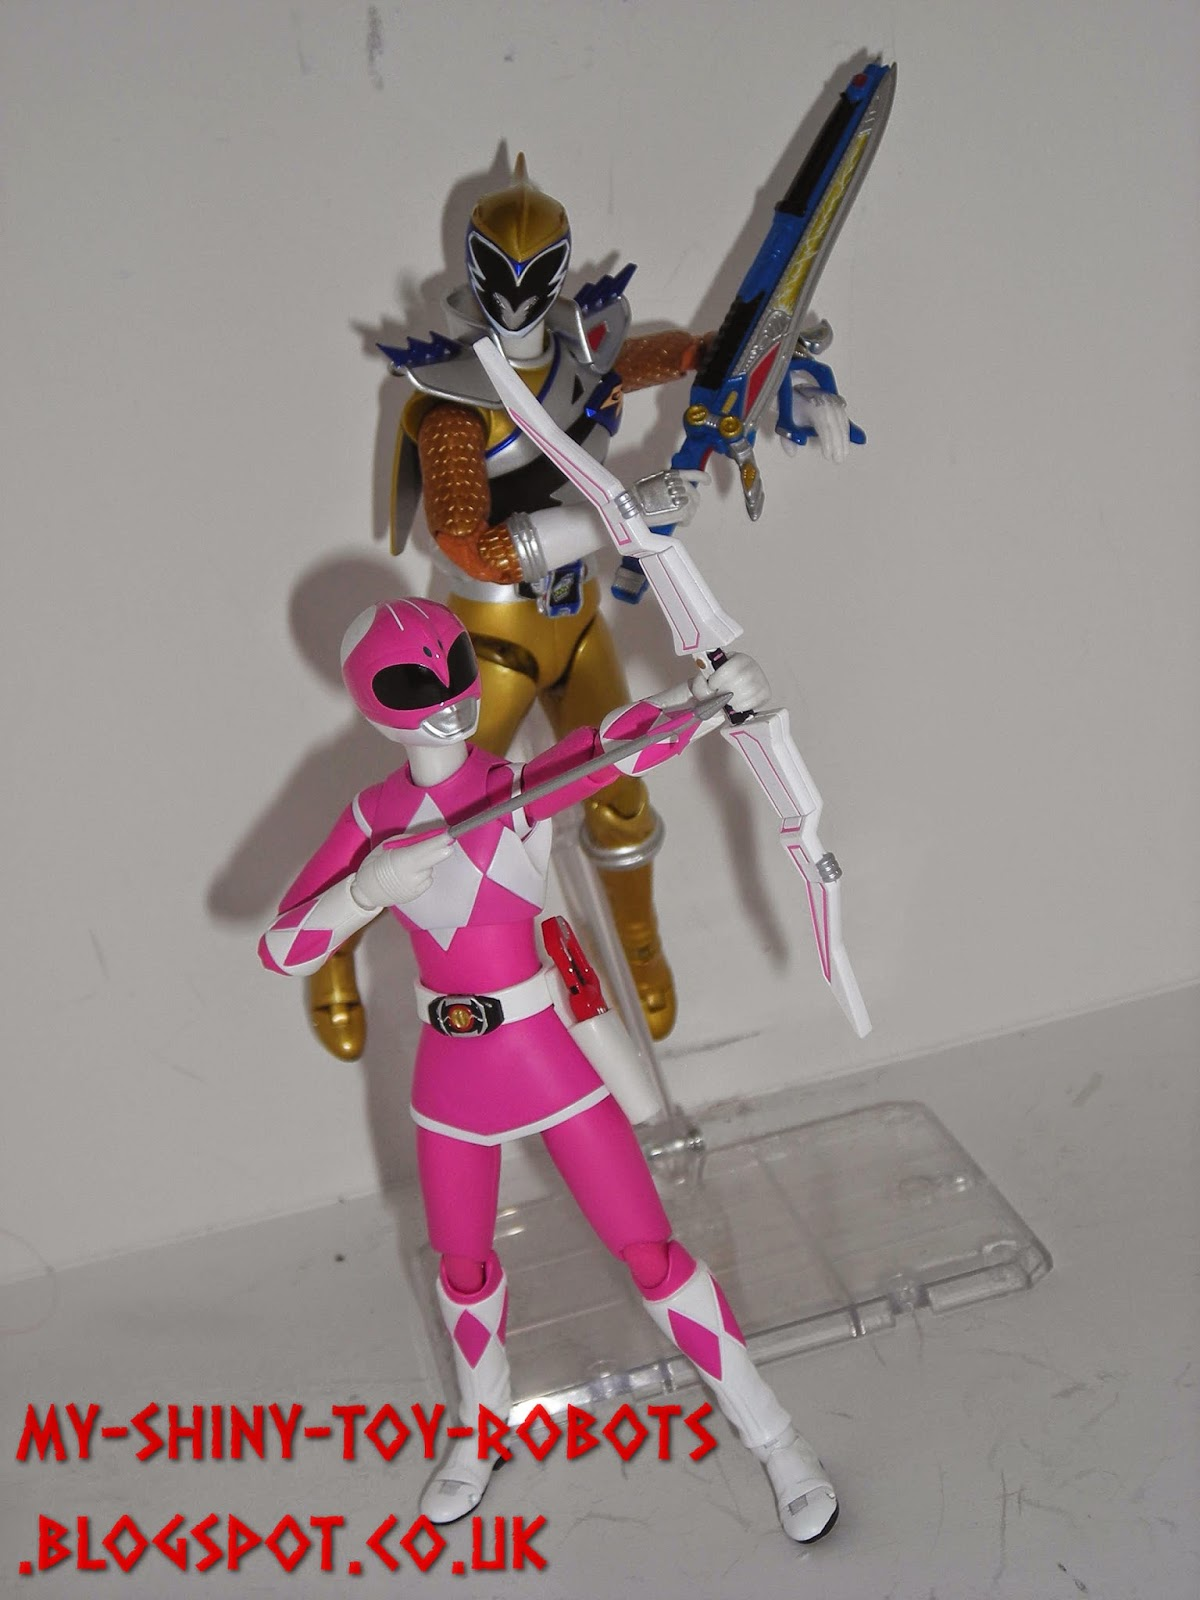 Figuarts Abare Yellow when?